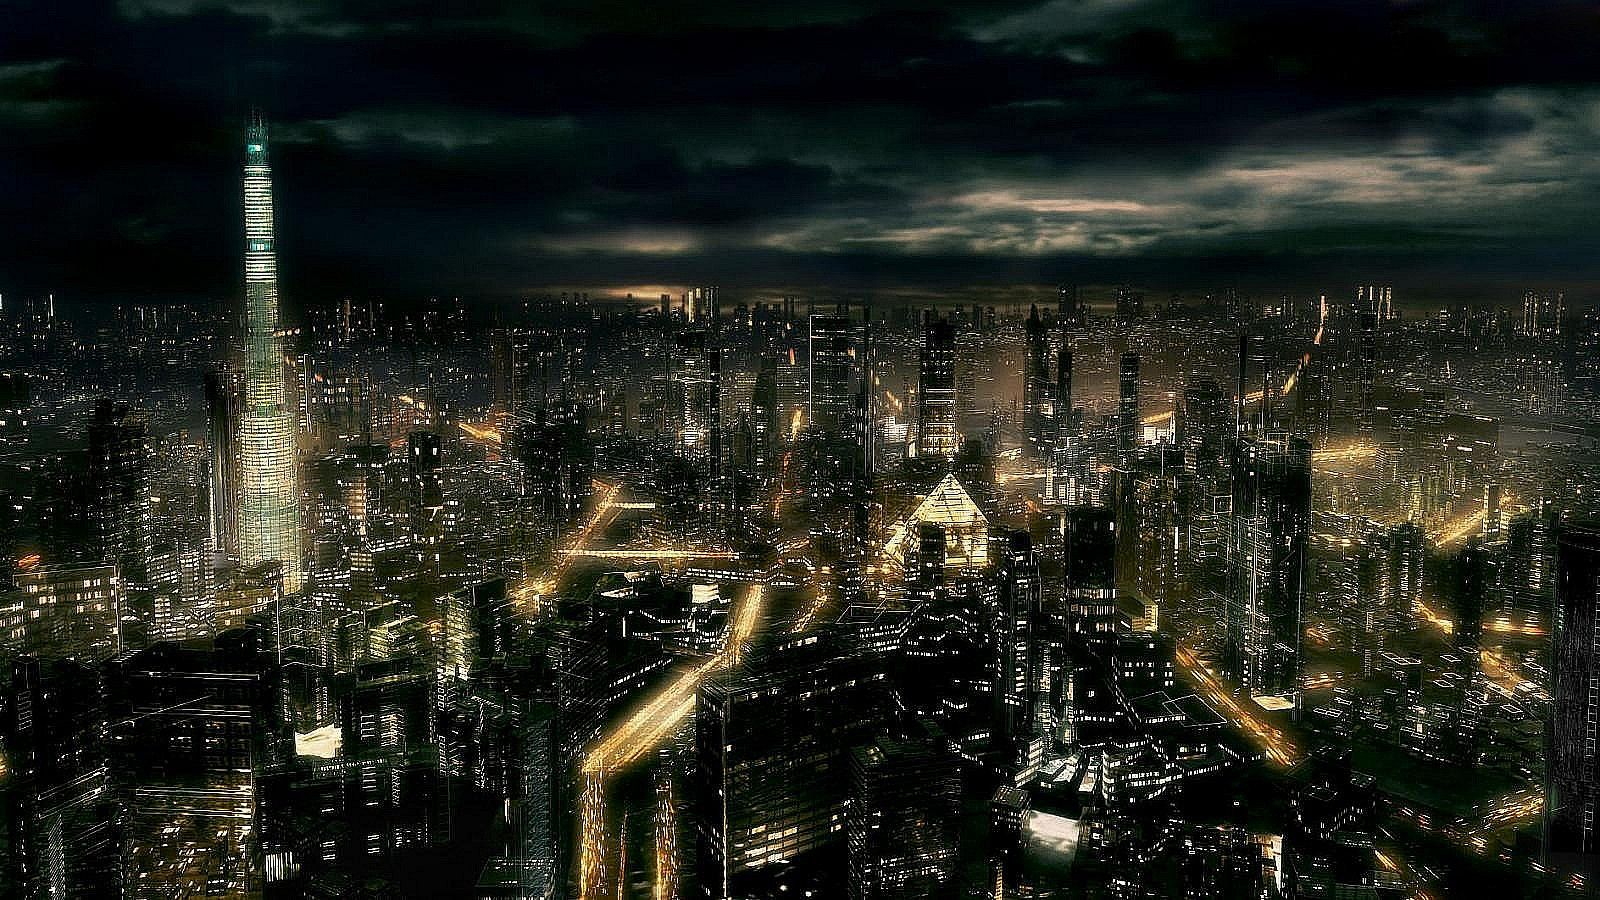 wallpapers hd city | city | pinterest | dark city and wallpaper